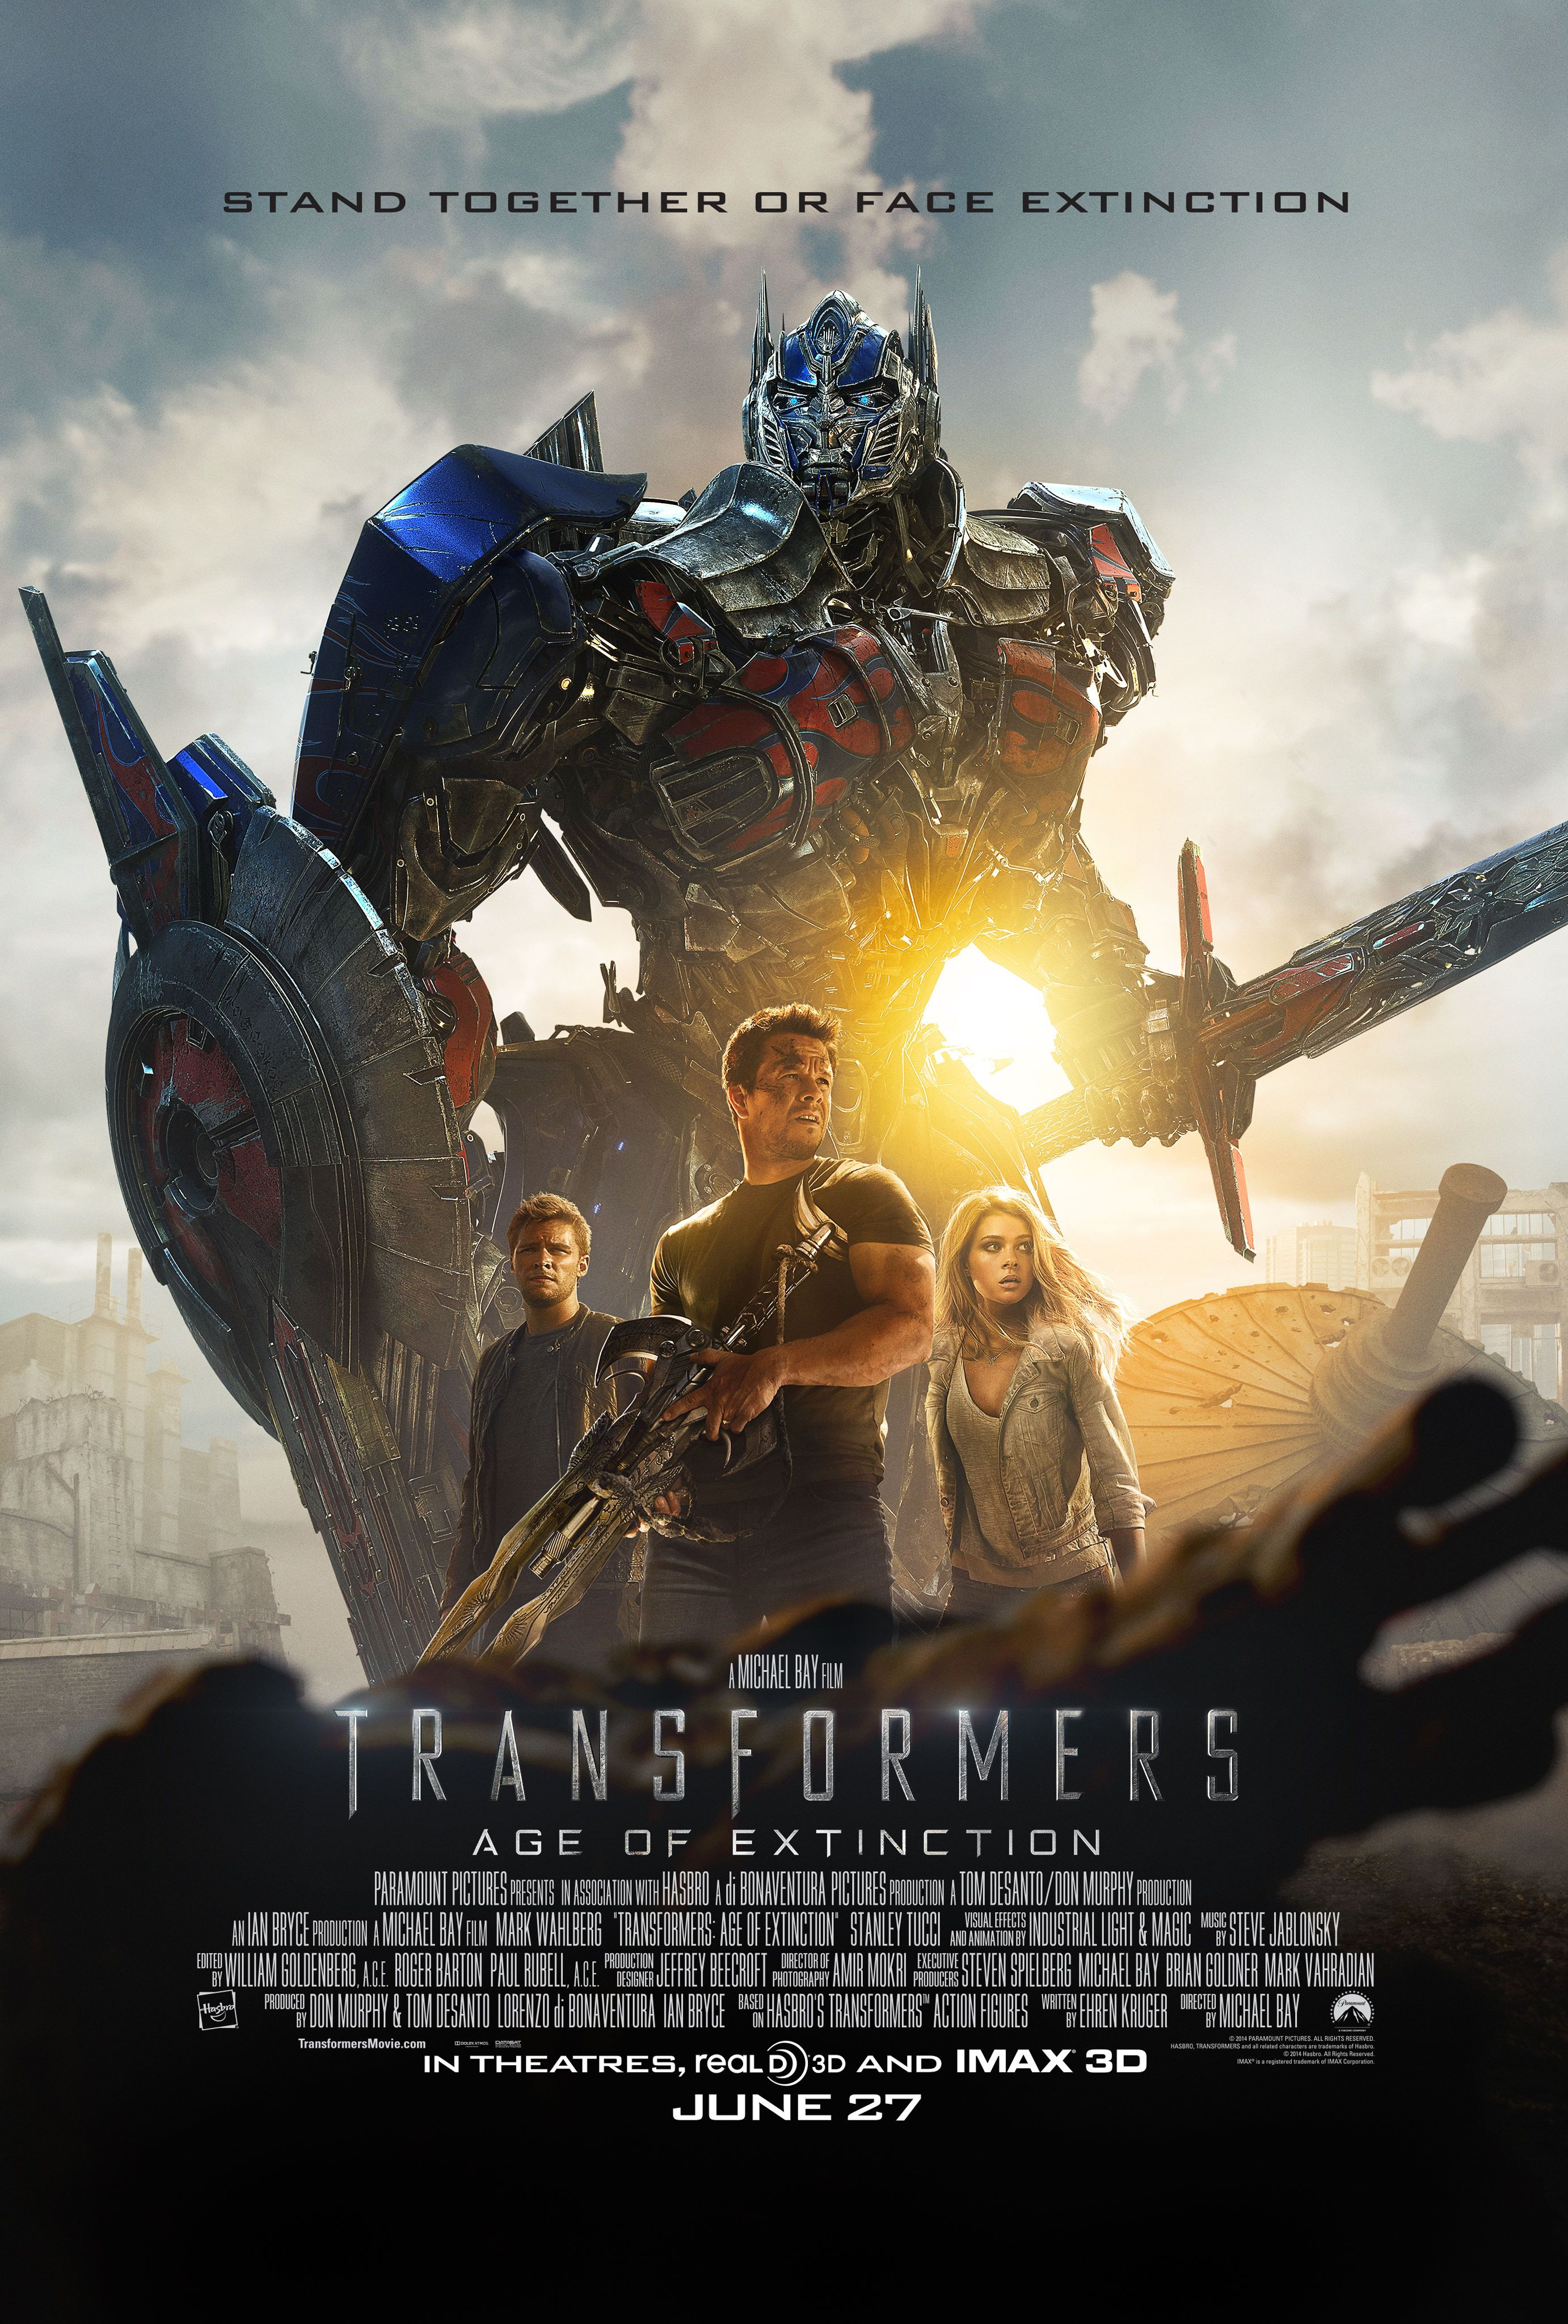 transformers: age of extinction trailer 2: a new robot army